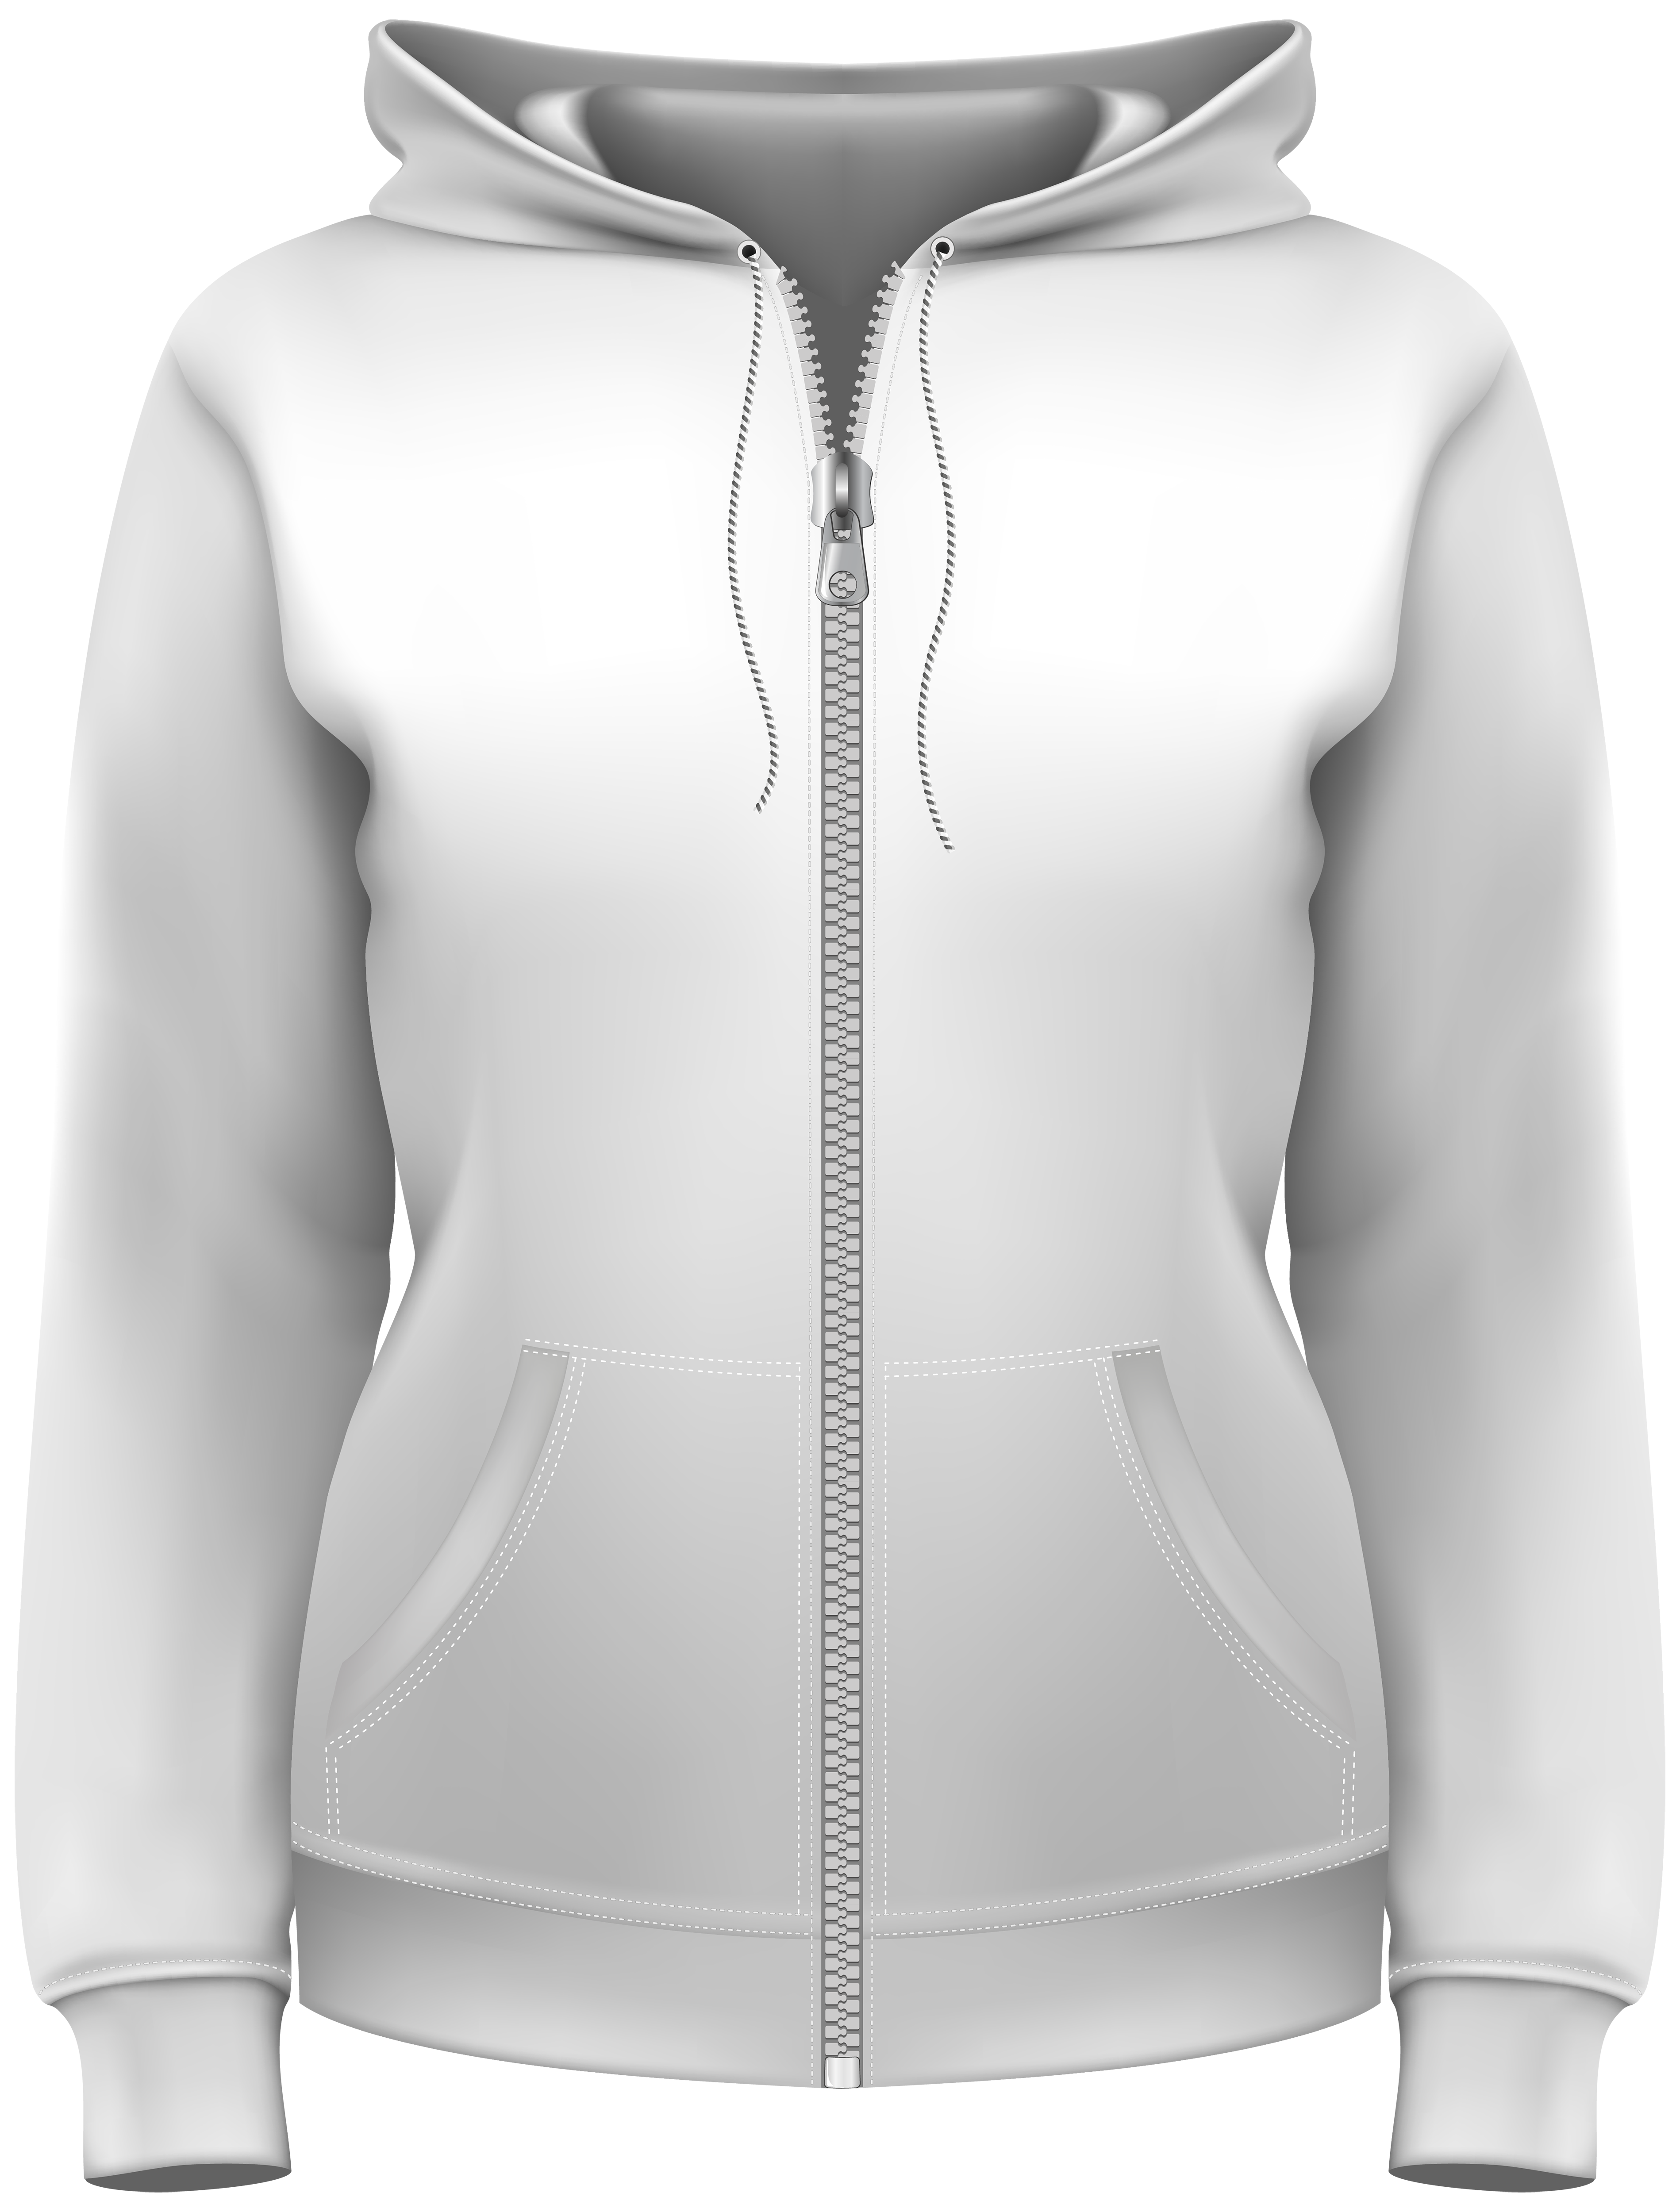 Zipper clipart realistic. White hoodie png best